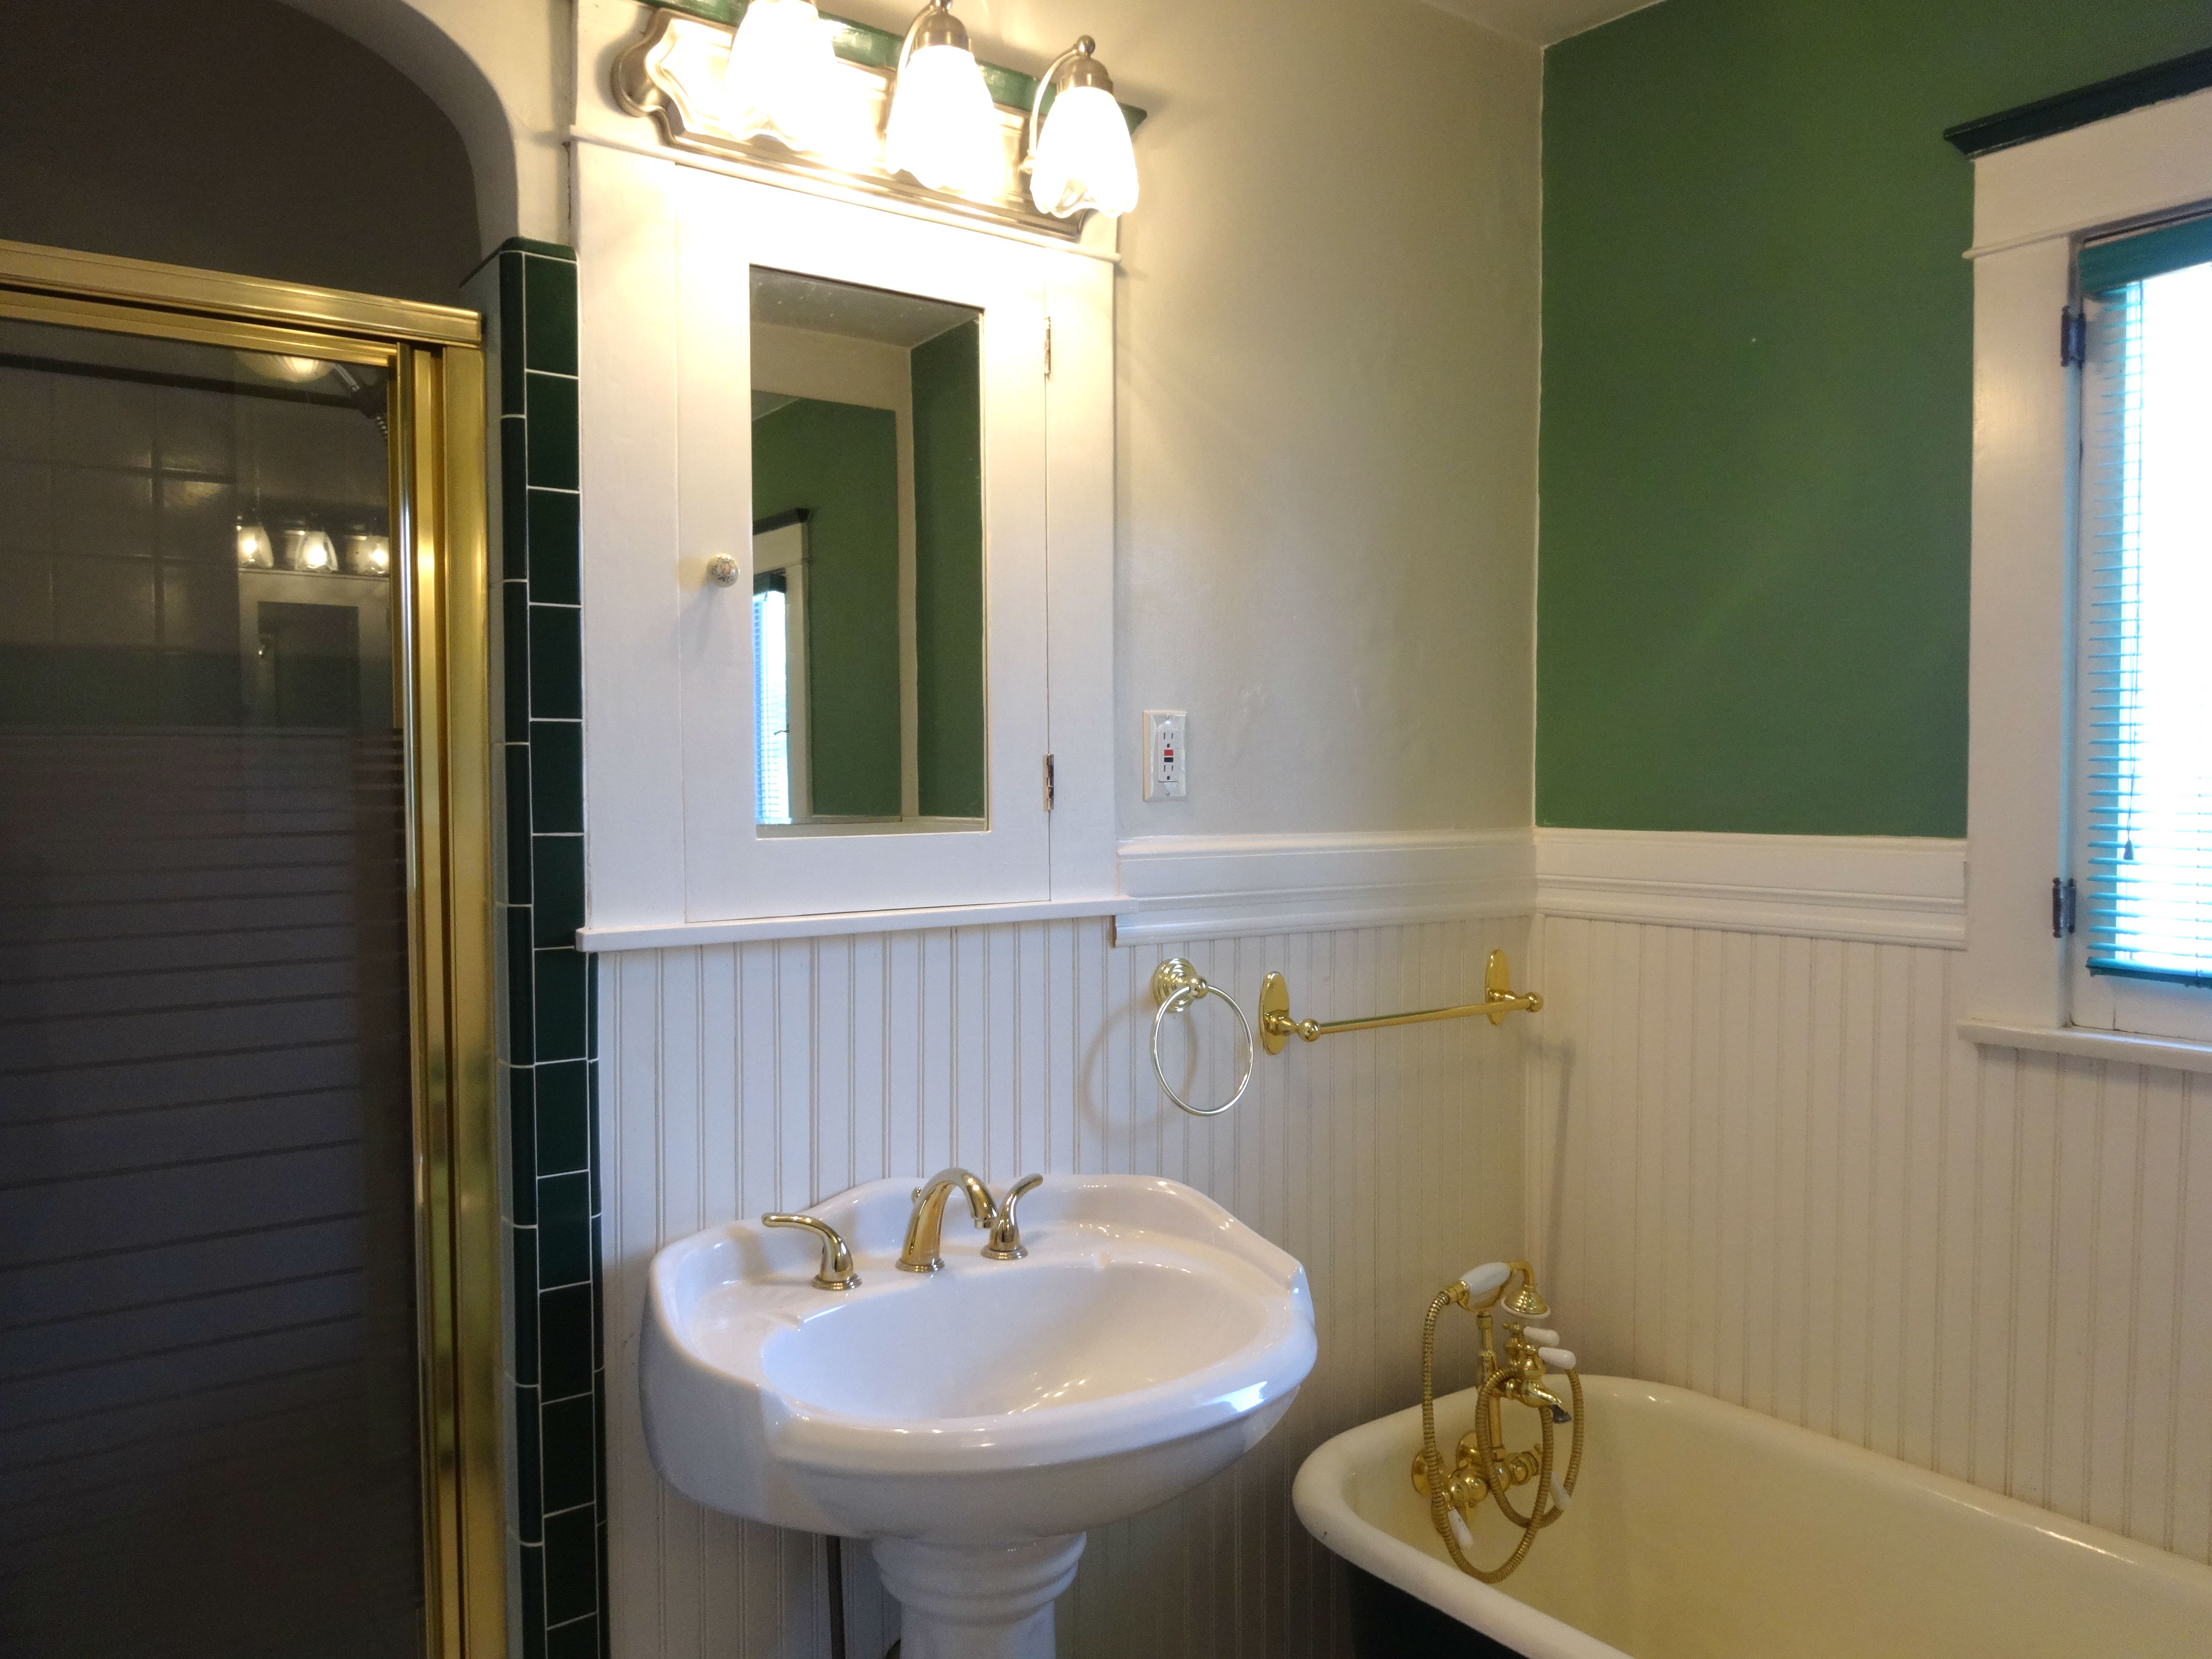 Bathroom with tile floor, wainscoting, newer pedestal sink and commode, with separate shower and a vintage claw foot tub!